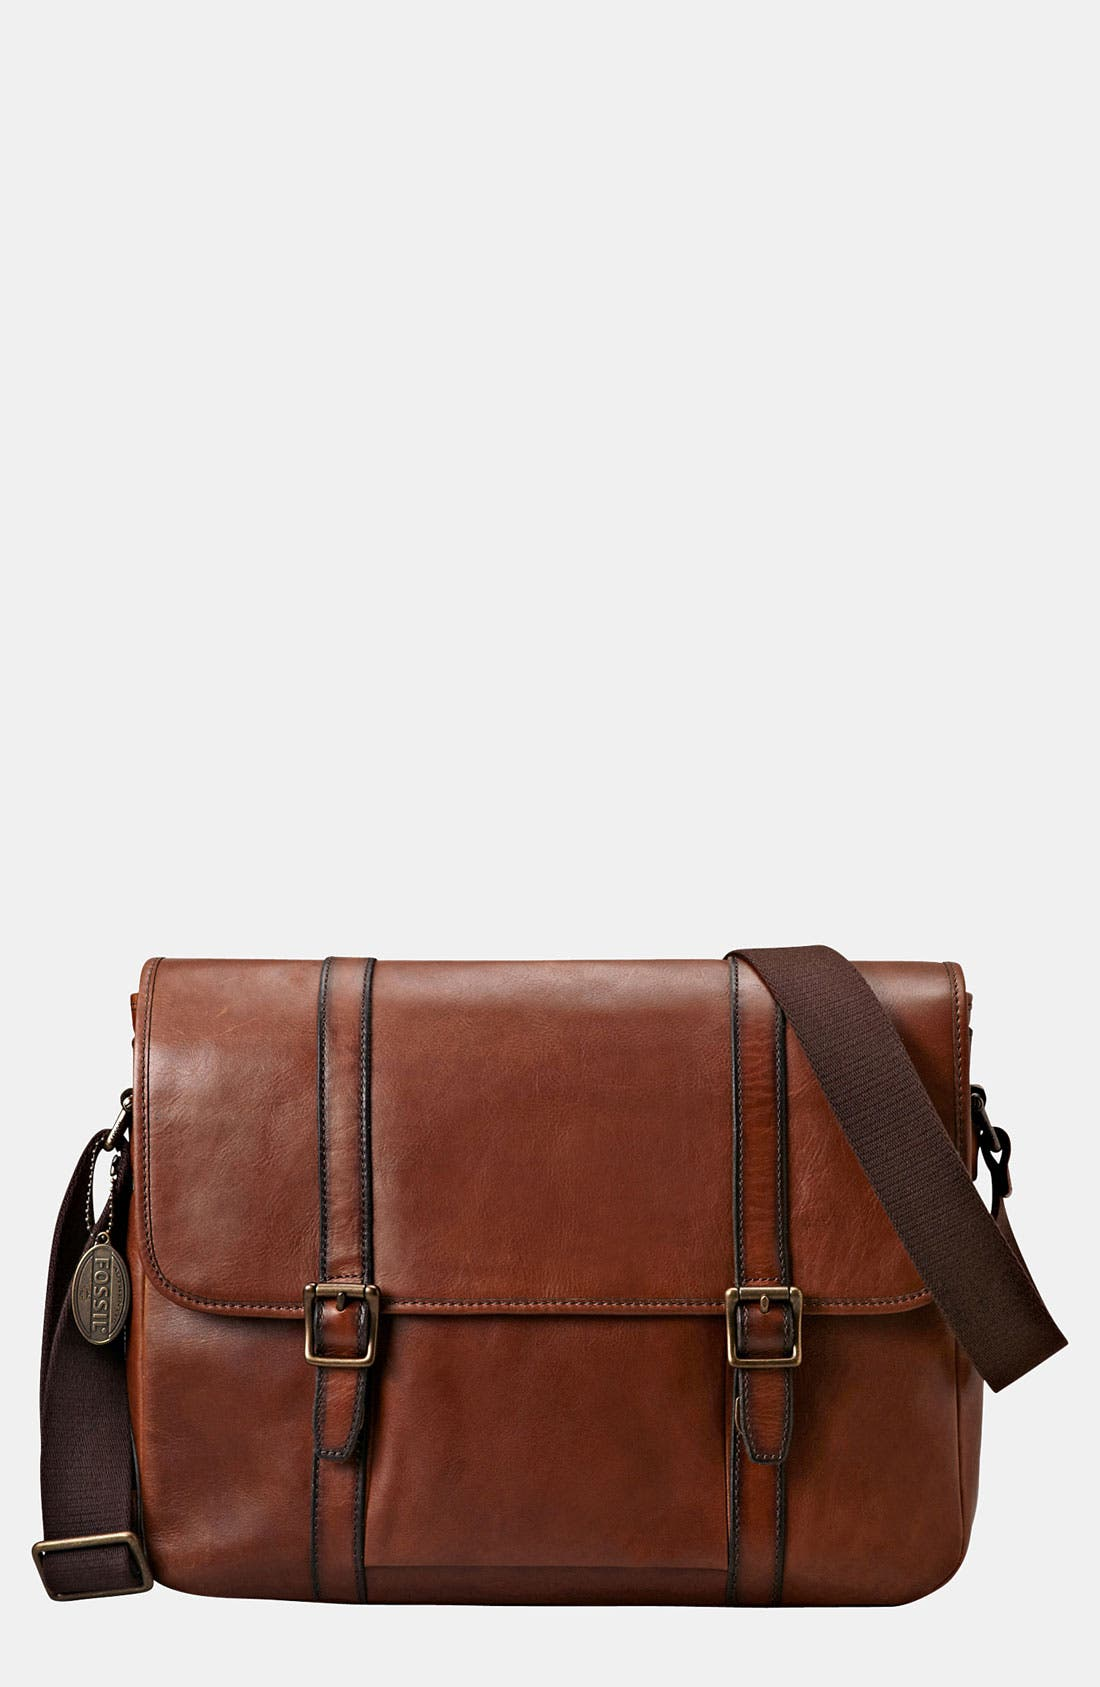 Main Image - Fossil 'Estate' Leather Messenger Bag